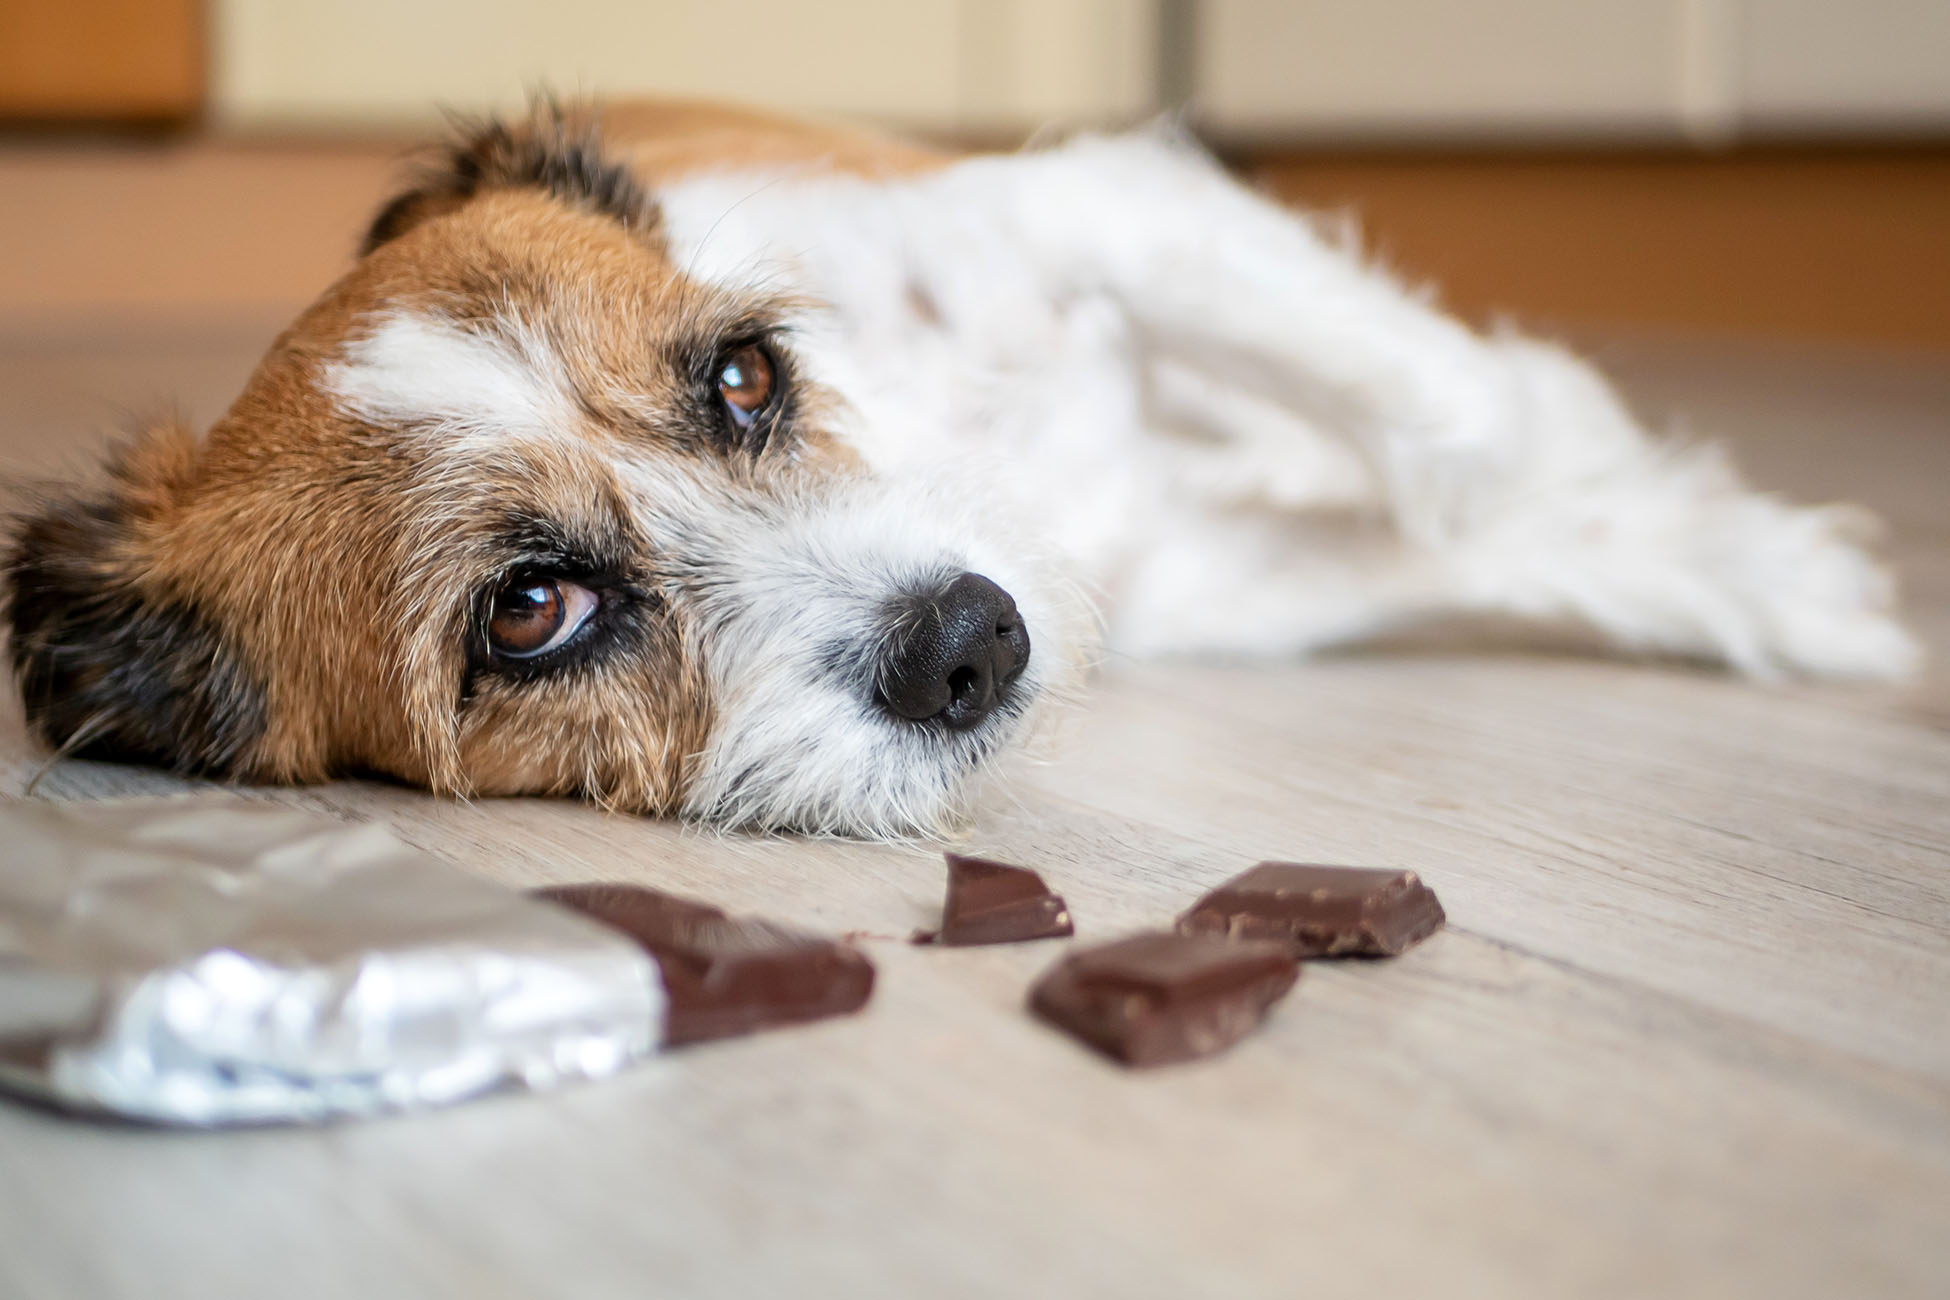 dog lying on floor looking sick with chocolate nearby